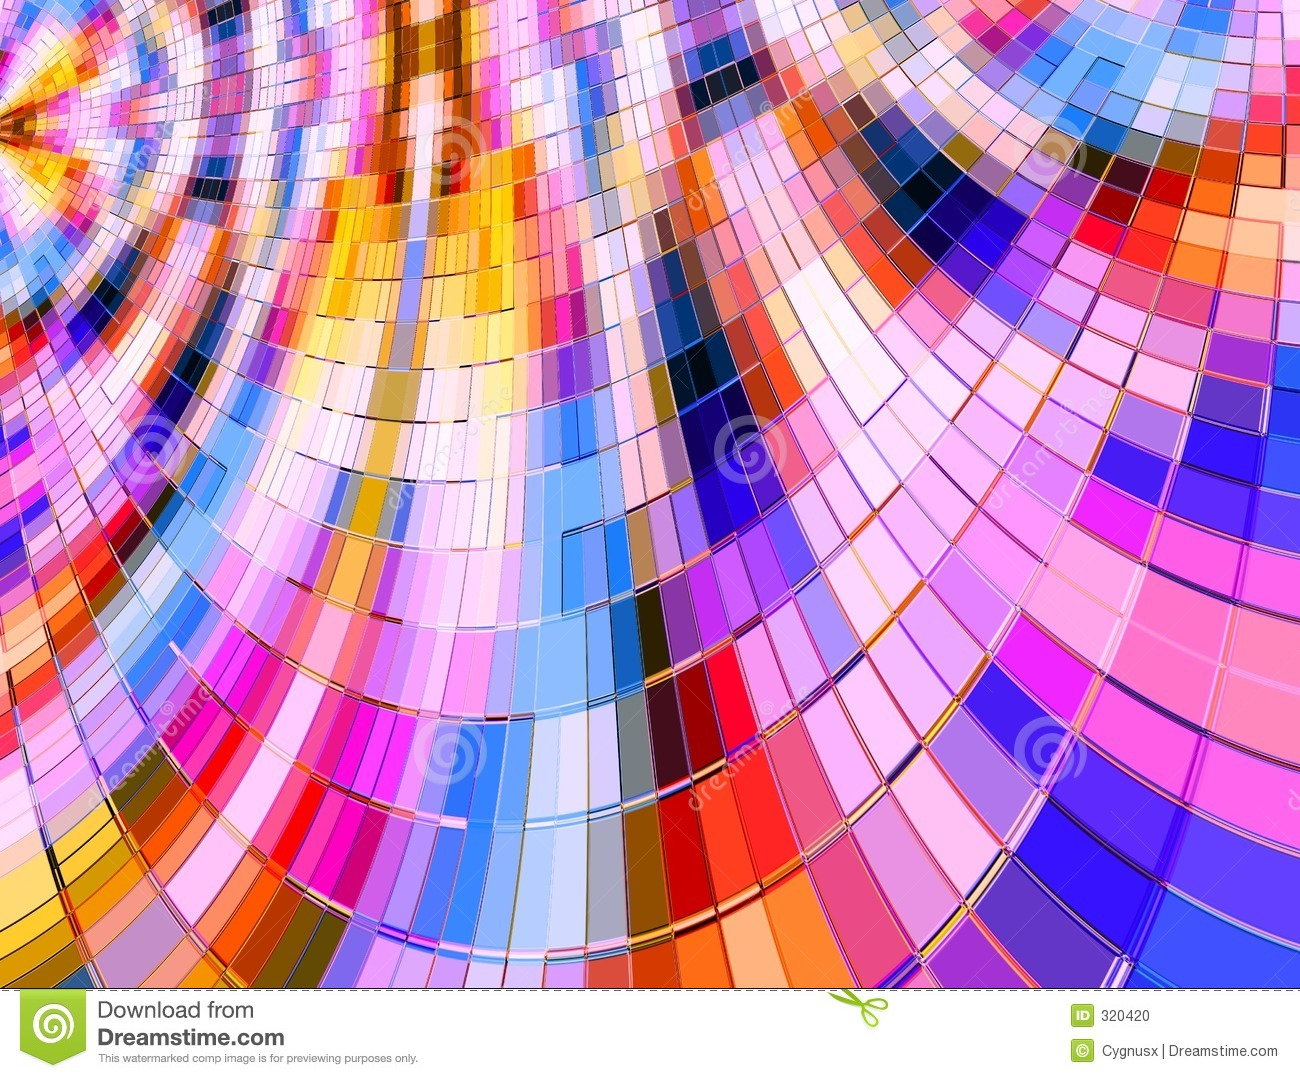 Warped Multi Colour Mosaic Stock Photo - Image: 320420